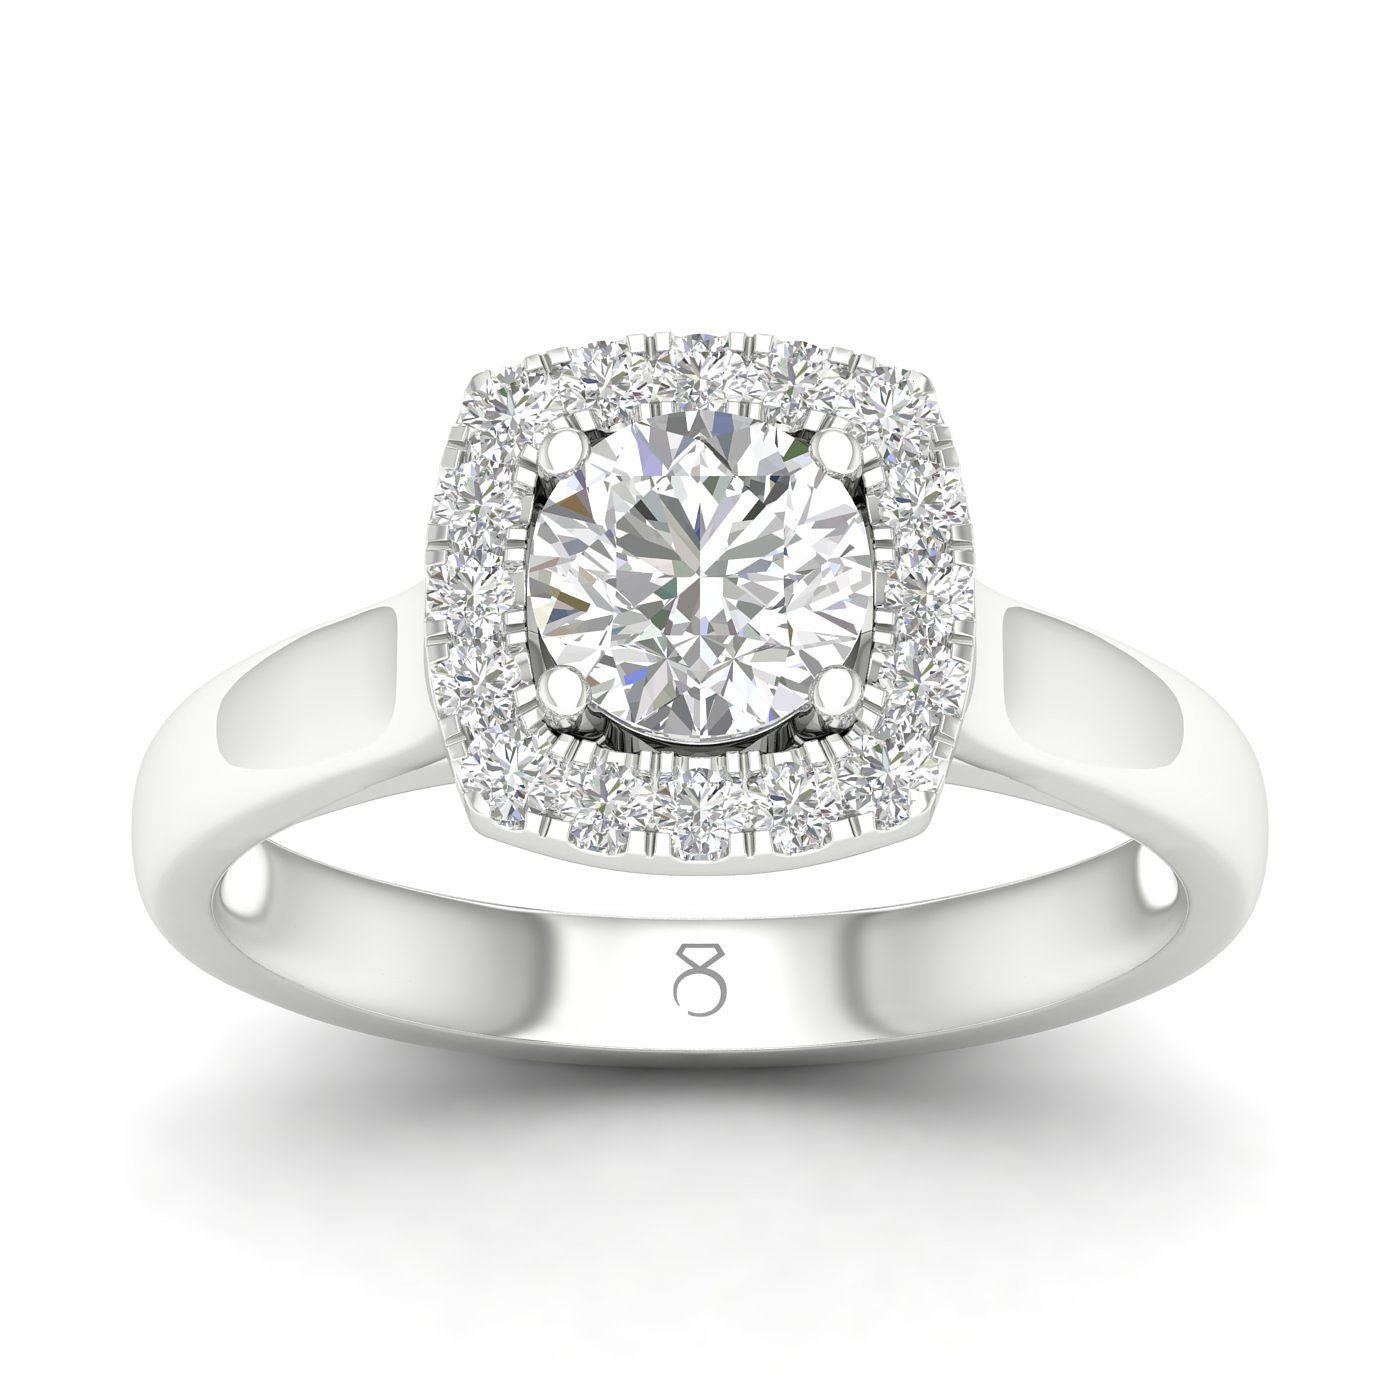 The Diamond Story 18ct White Gold 1ct Diamond Halo Ring - Product number 4142845